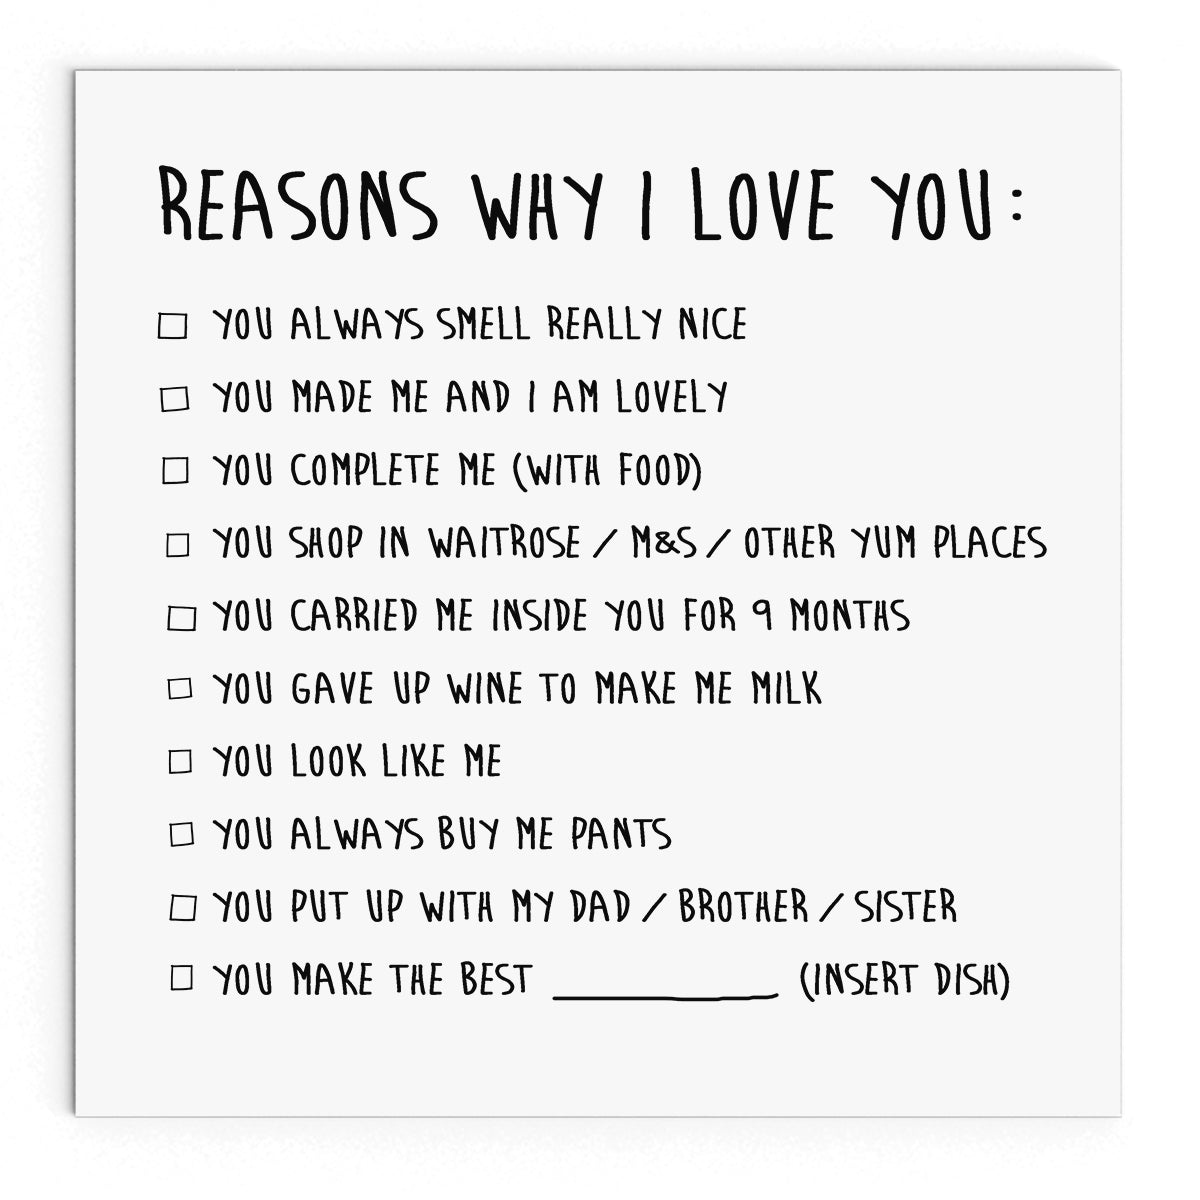 Reasons why I love you - Naughty Little Cards